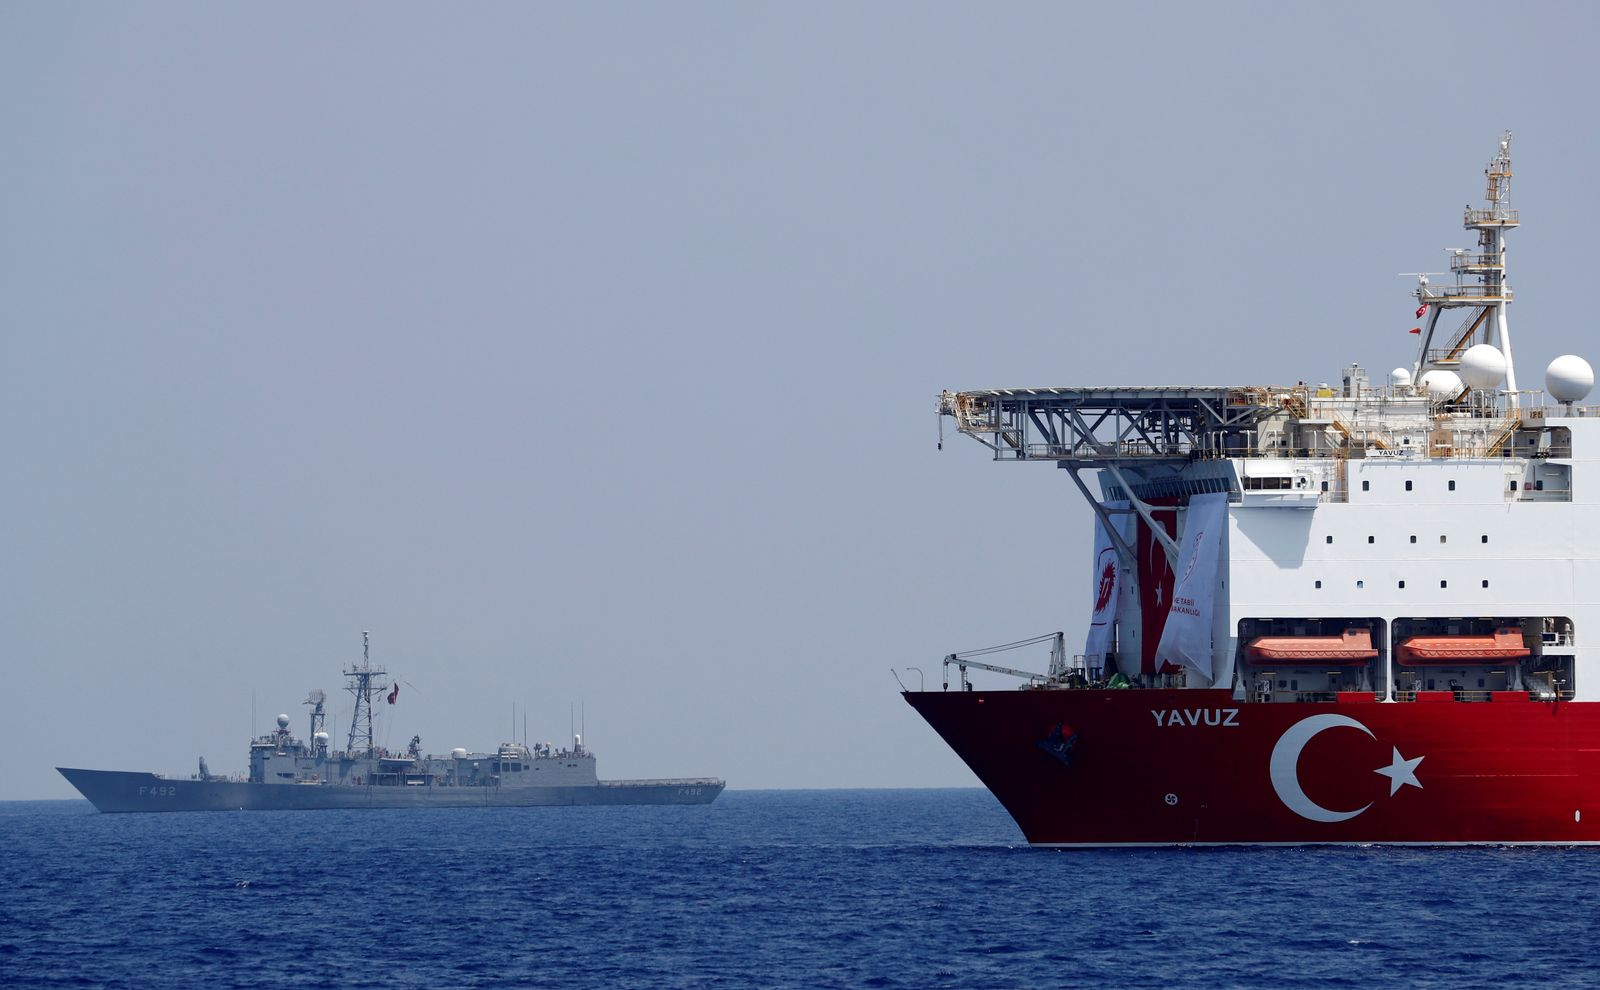 FILE PHOTO: Turkish drilling vessel Yavuz is pictured in the eastern Mediterranean See off Cyprus